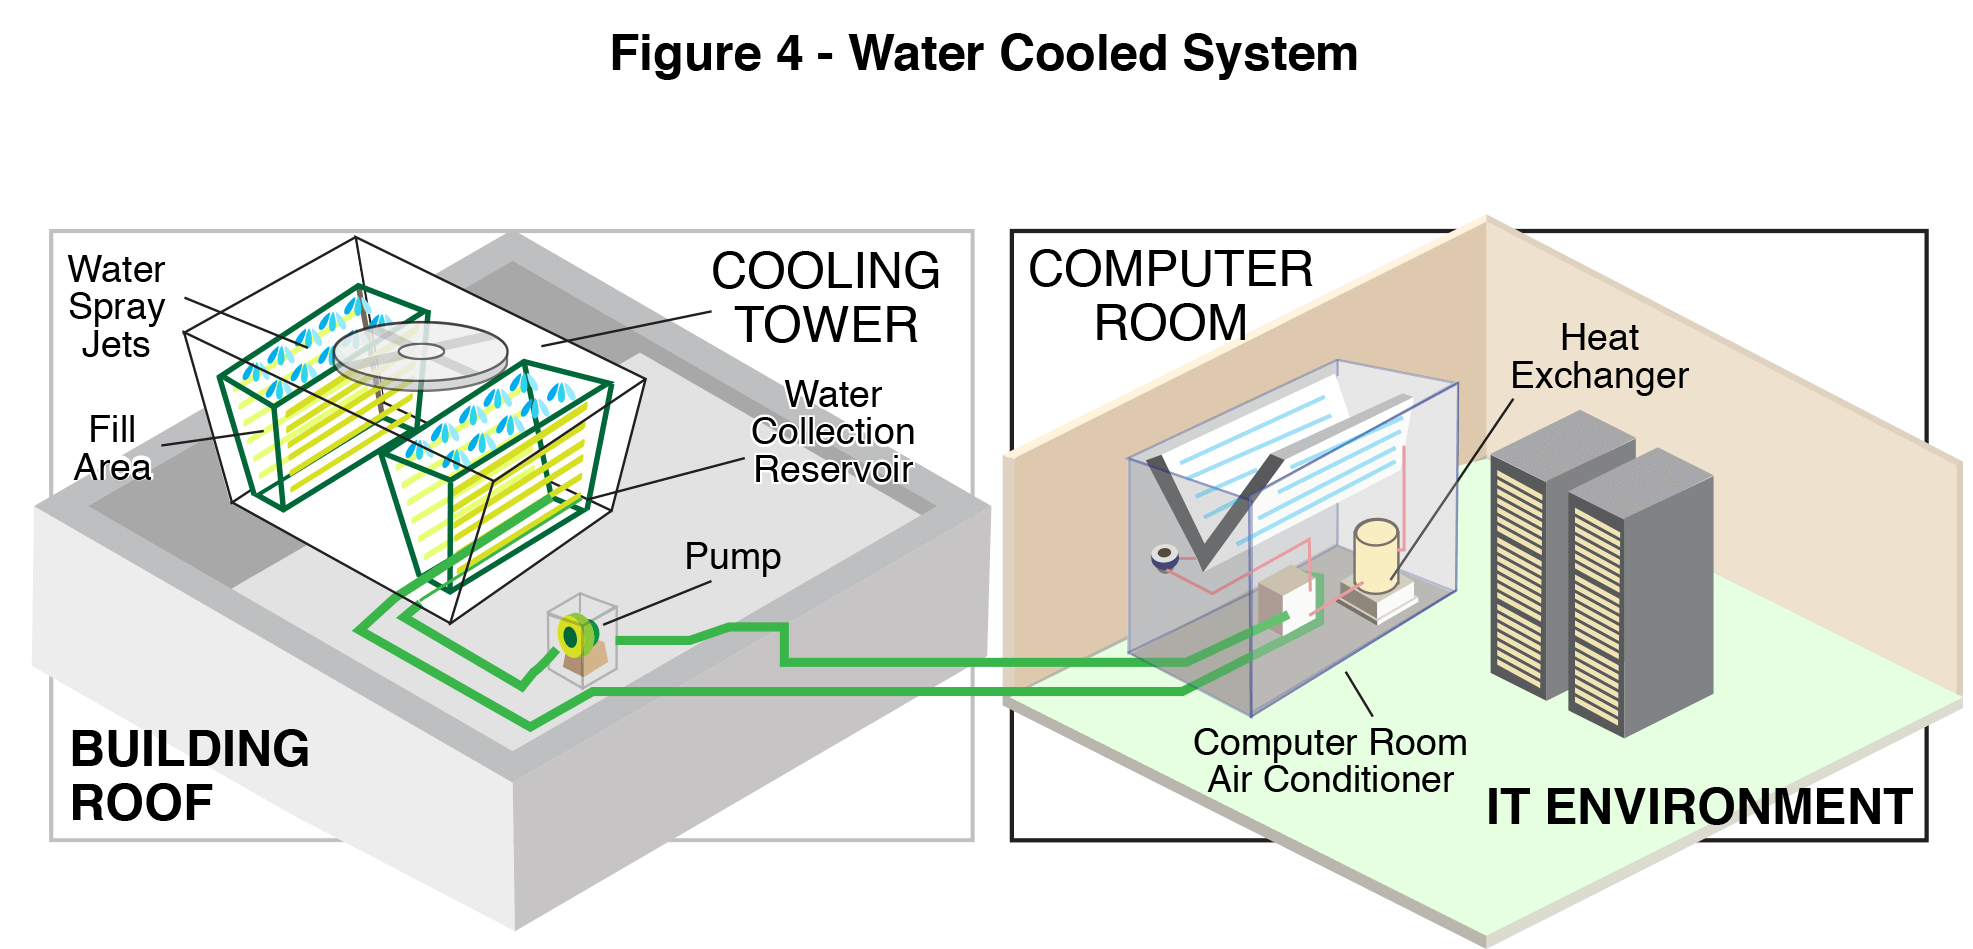 5 Types of IT Environment Heat Removal Methods - The Severn